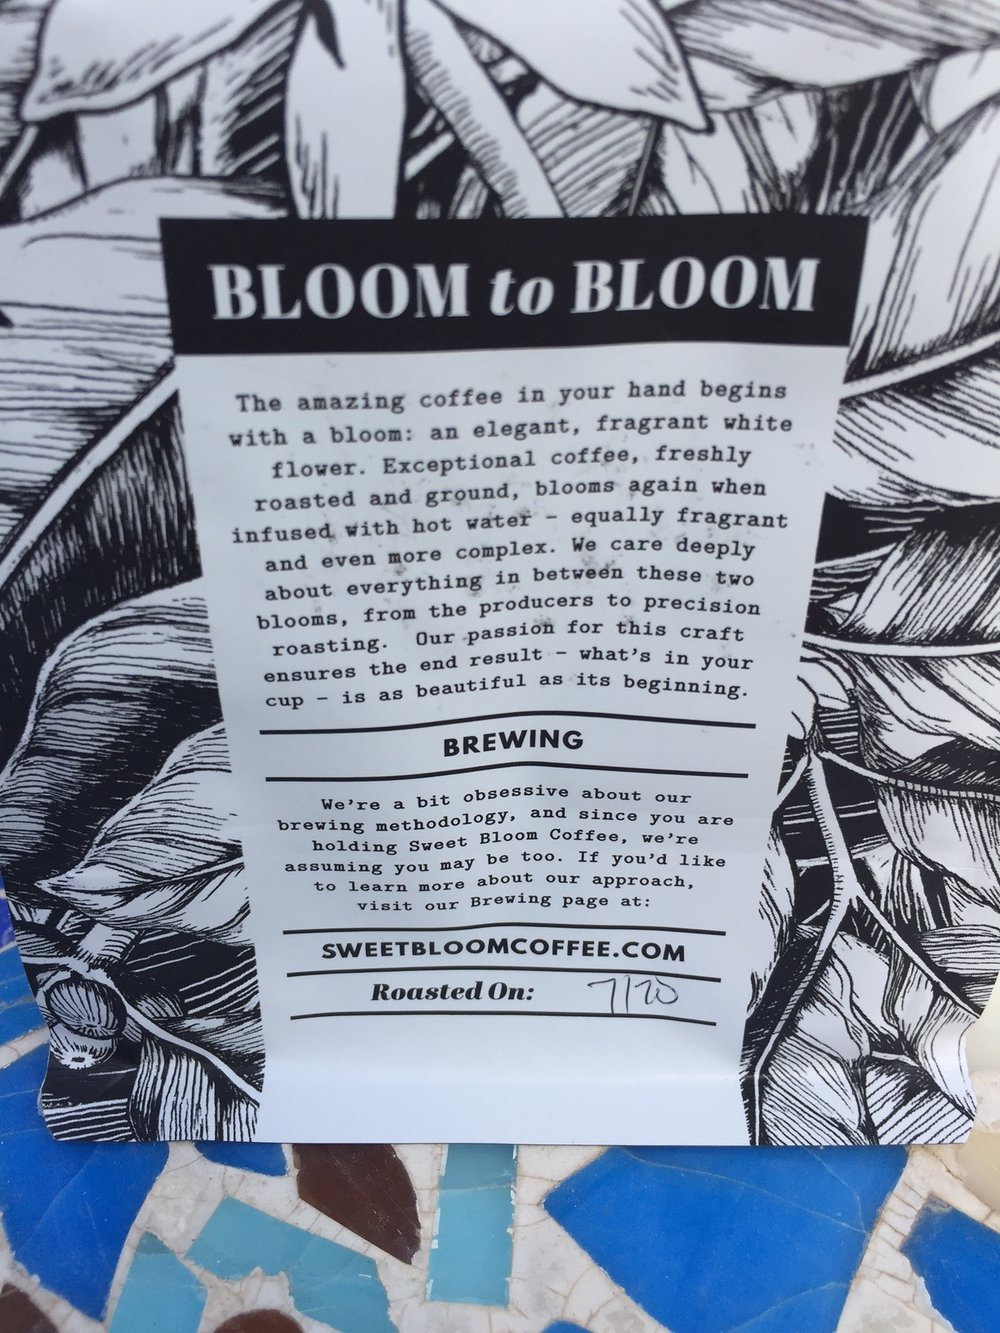 Great bags, great branding, great message. I really dig Sweet Bloom's Vibes and Principles.